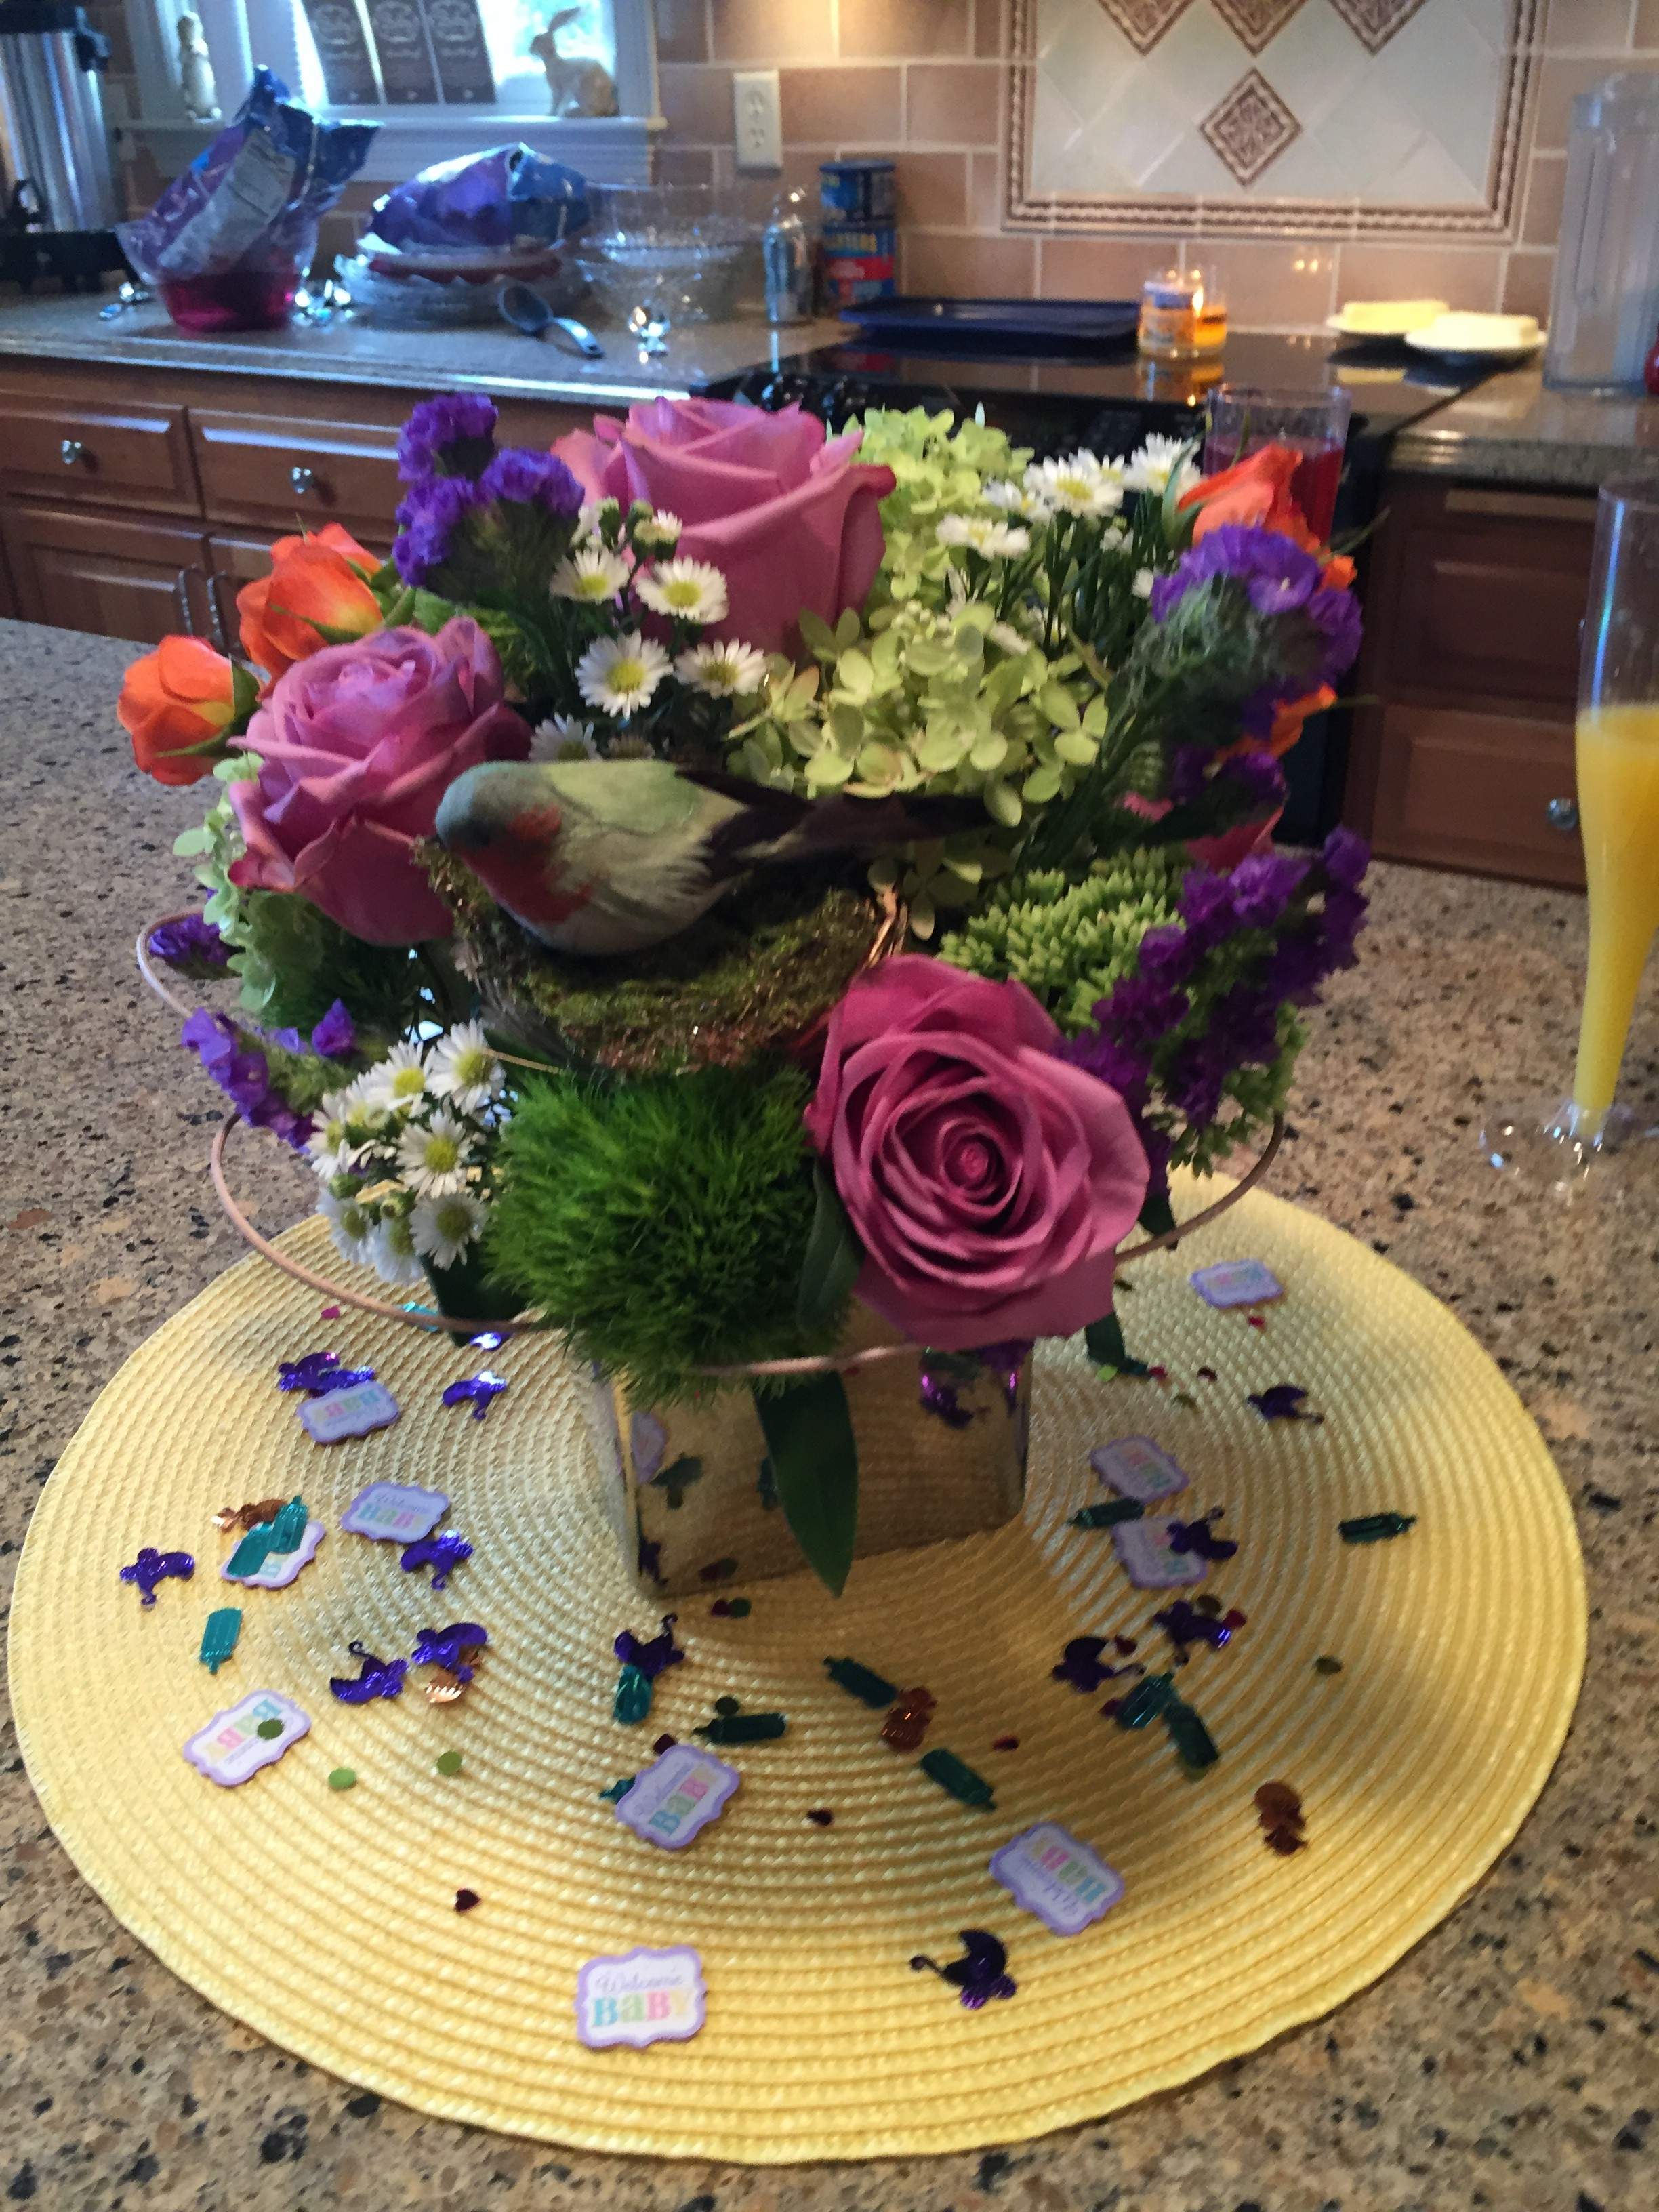 Purple rose and twig floral designs babe orange spray roses dianthus green trick purple statice and a small daisy like aster completed the design hydrangea and sedum were added from the altavistaventures Images